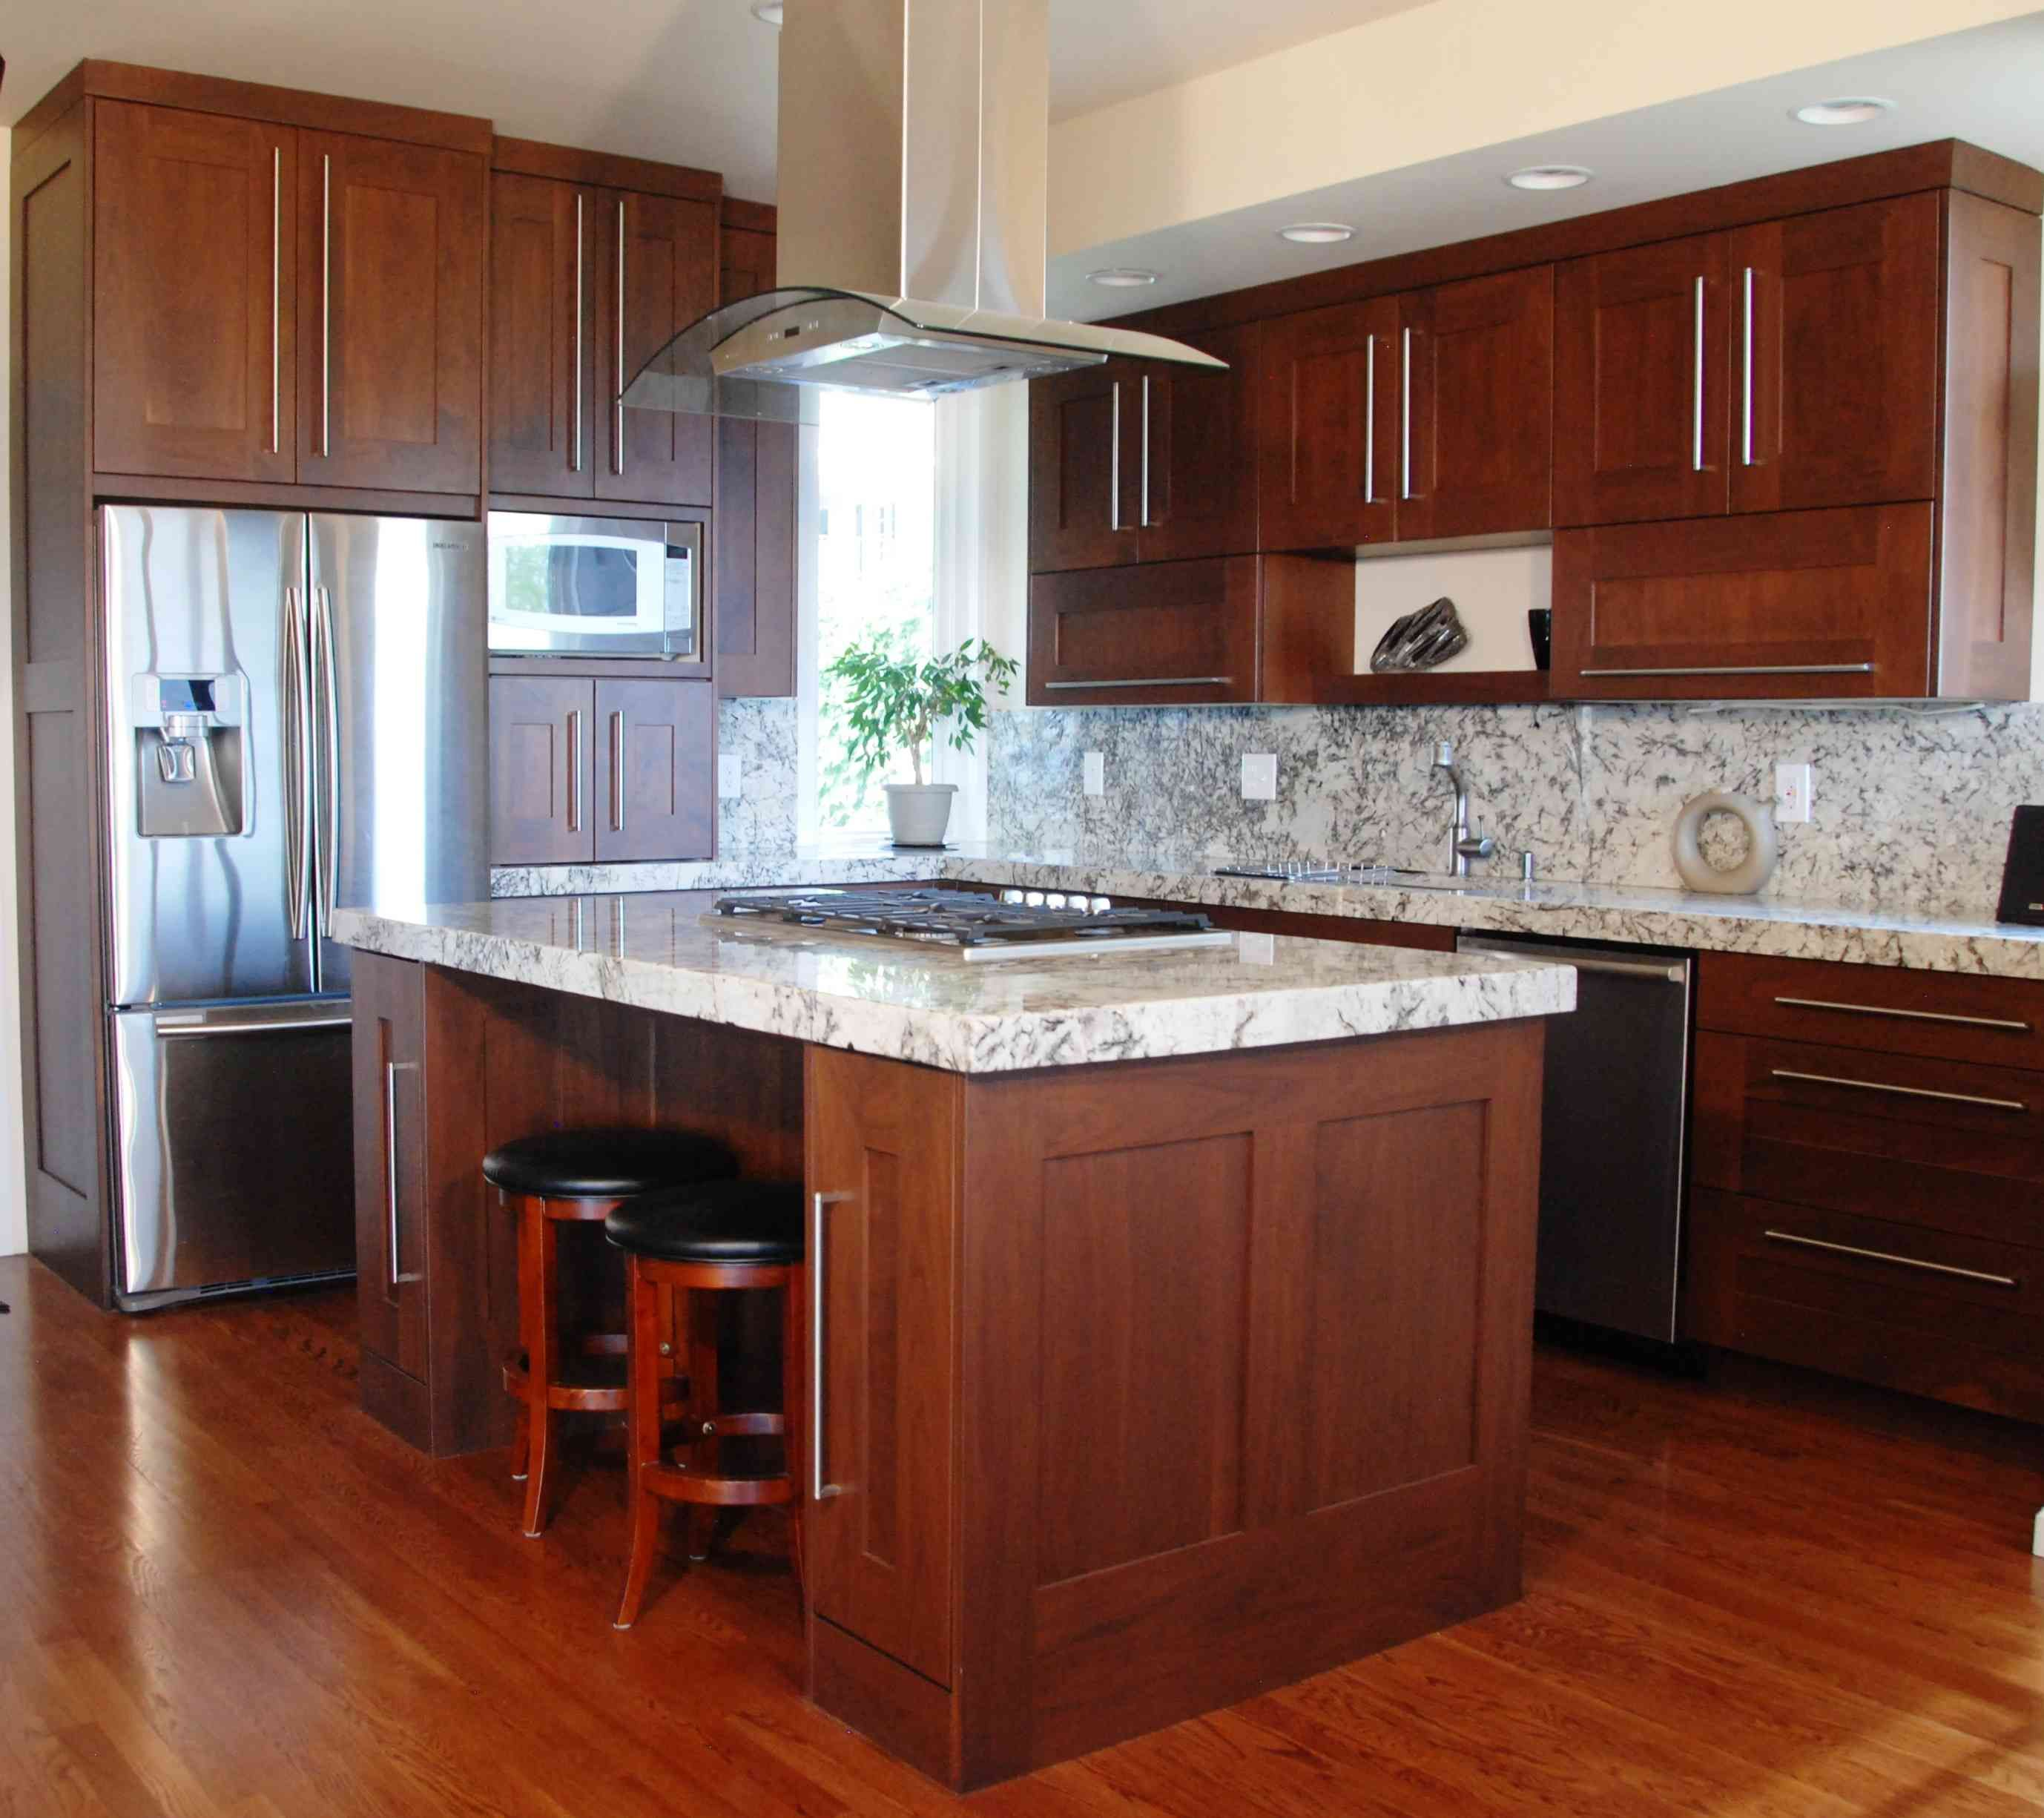 Best Cherry Wood Cabinets With White Granite Counters And White 640 x 480